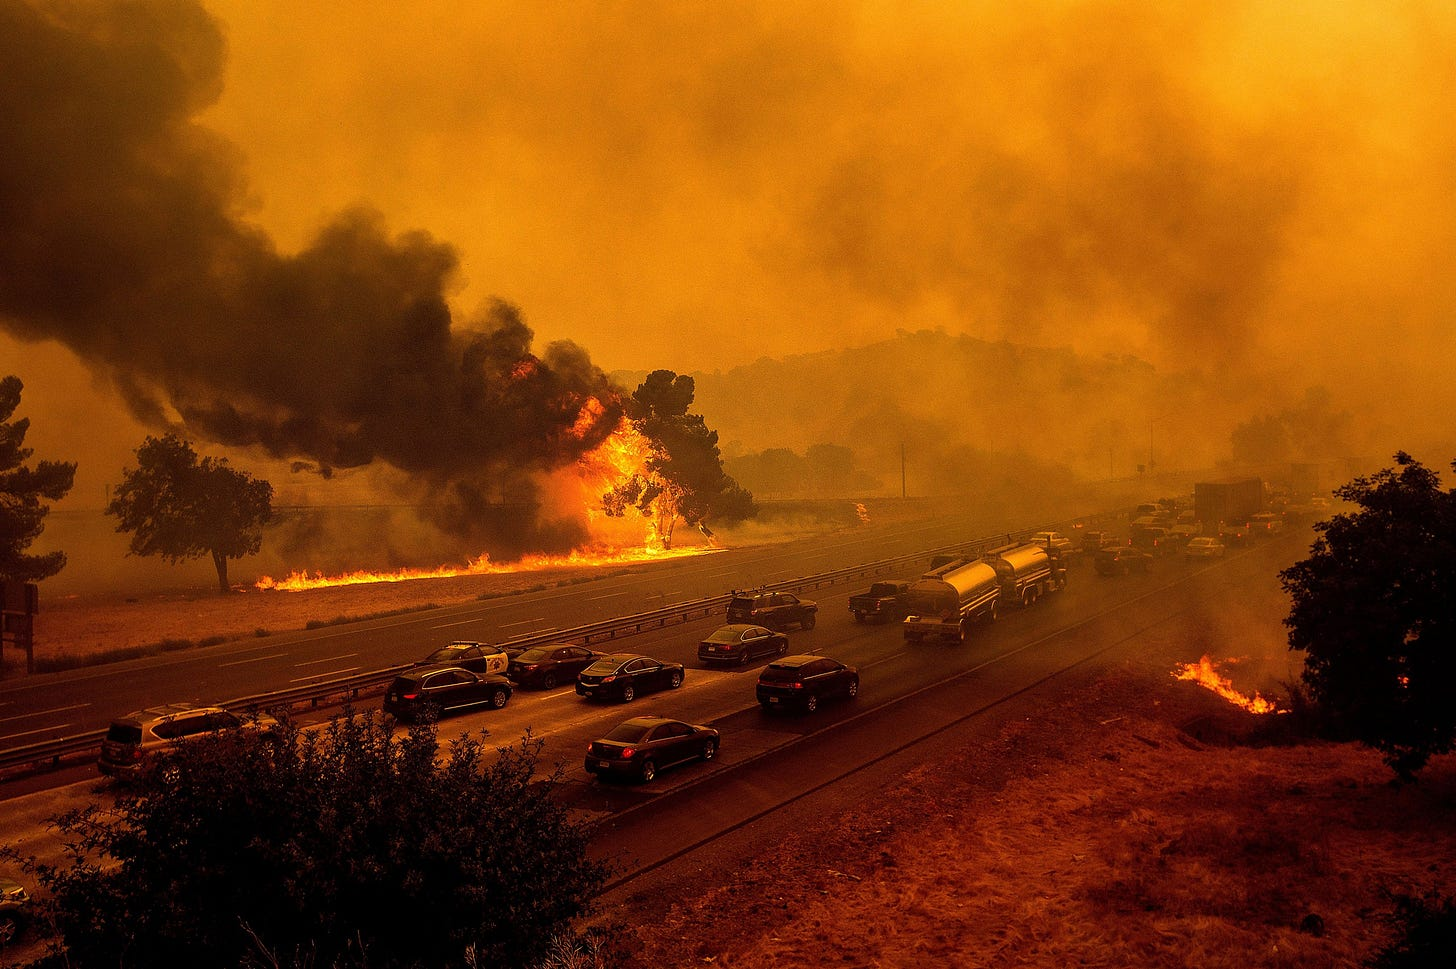 Fires on both sides of a busy highway.